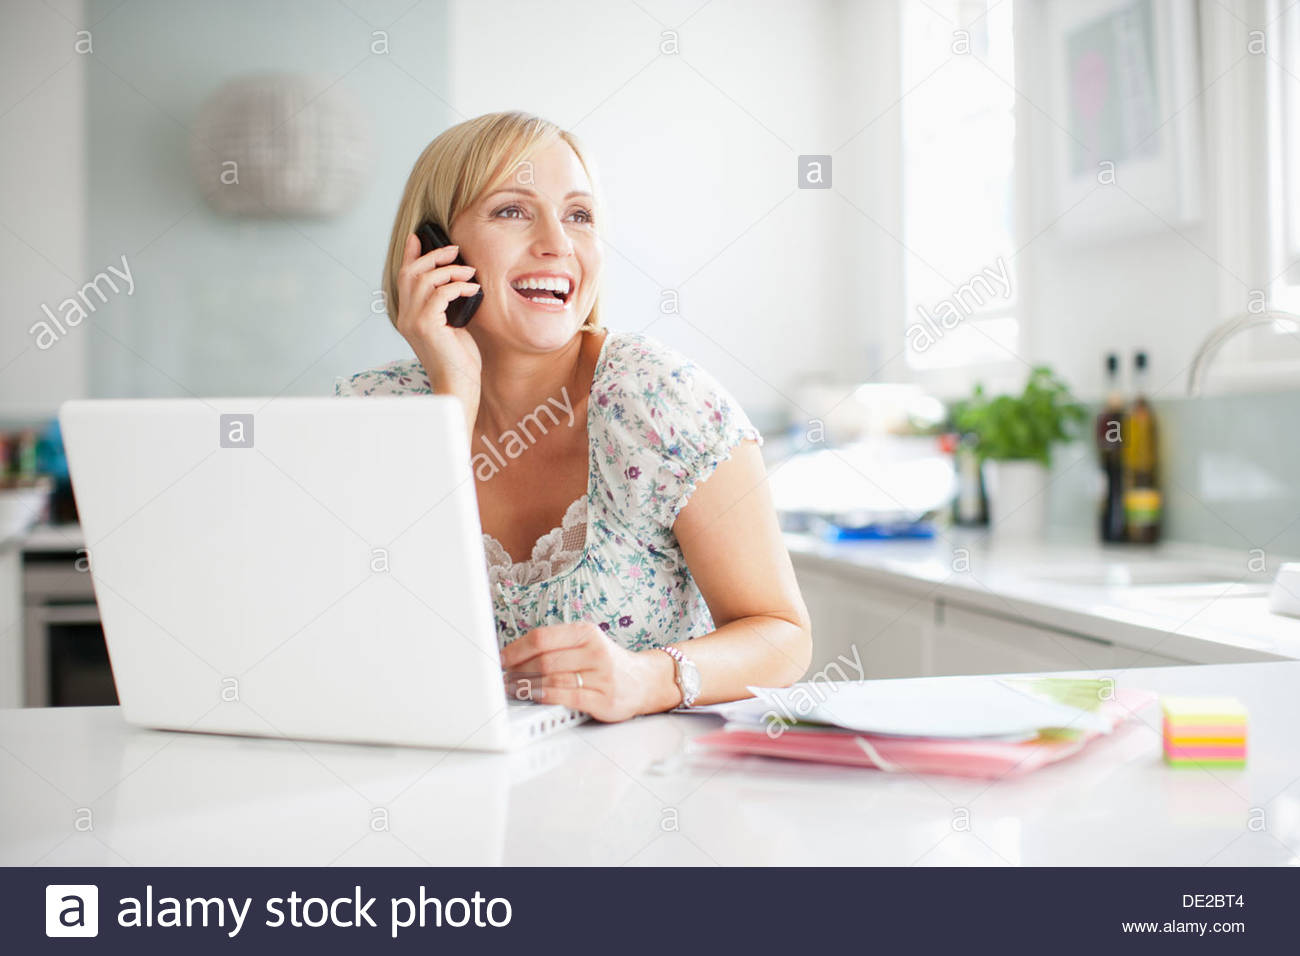 Woman using laptop and talking on cell phone - Stock Image